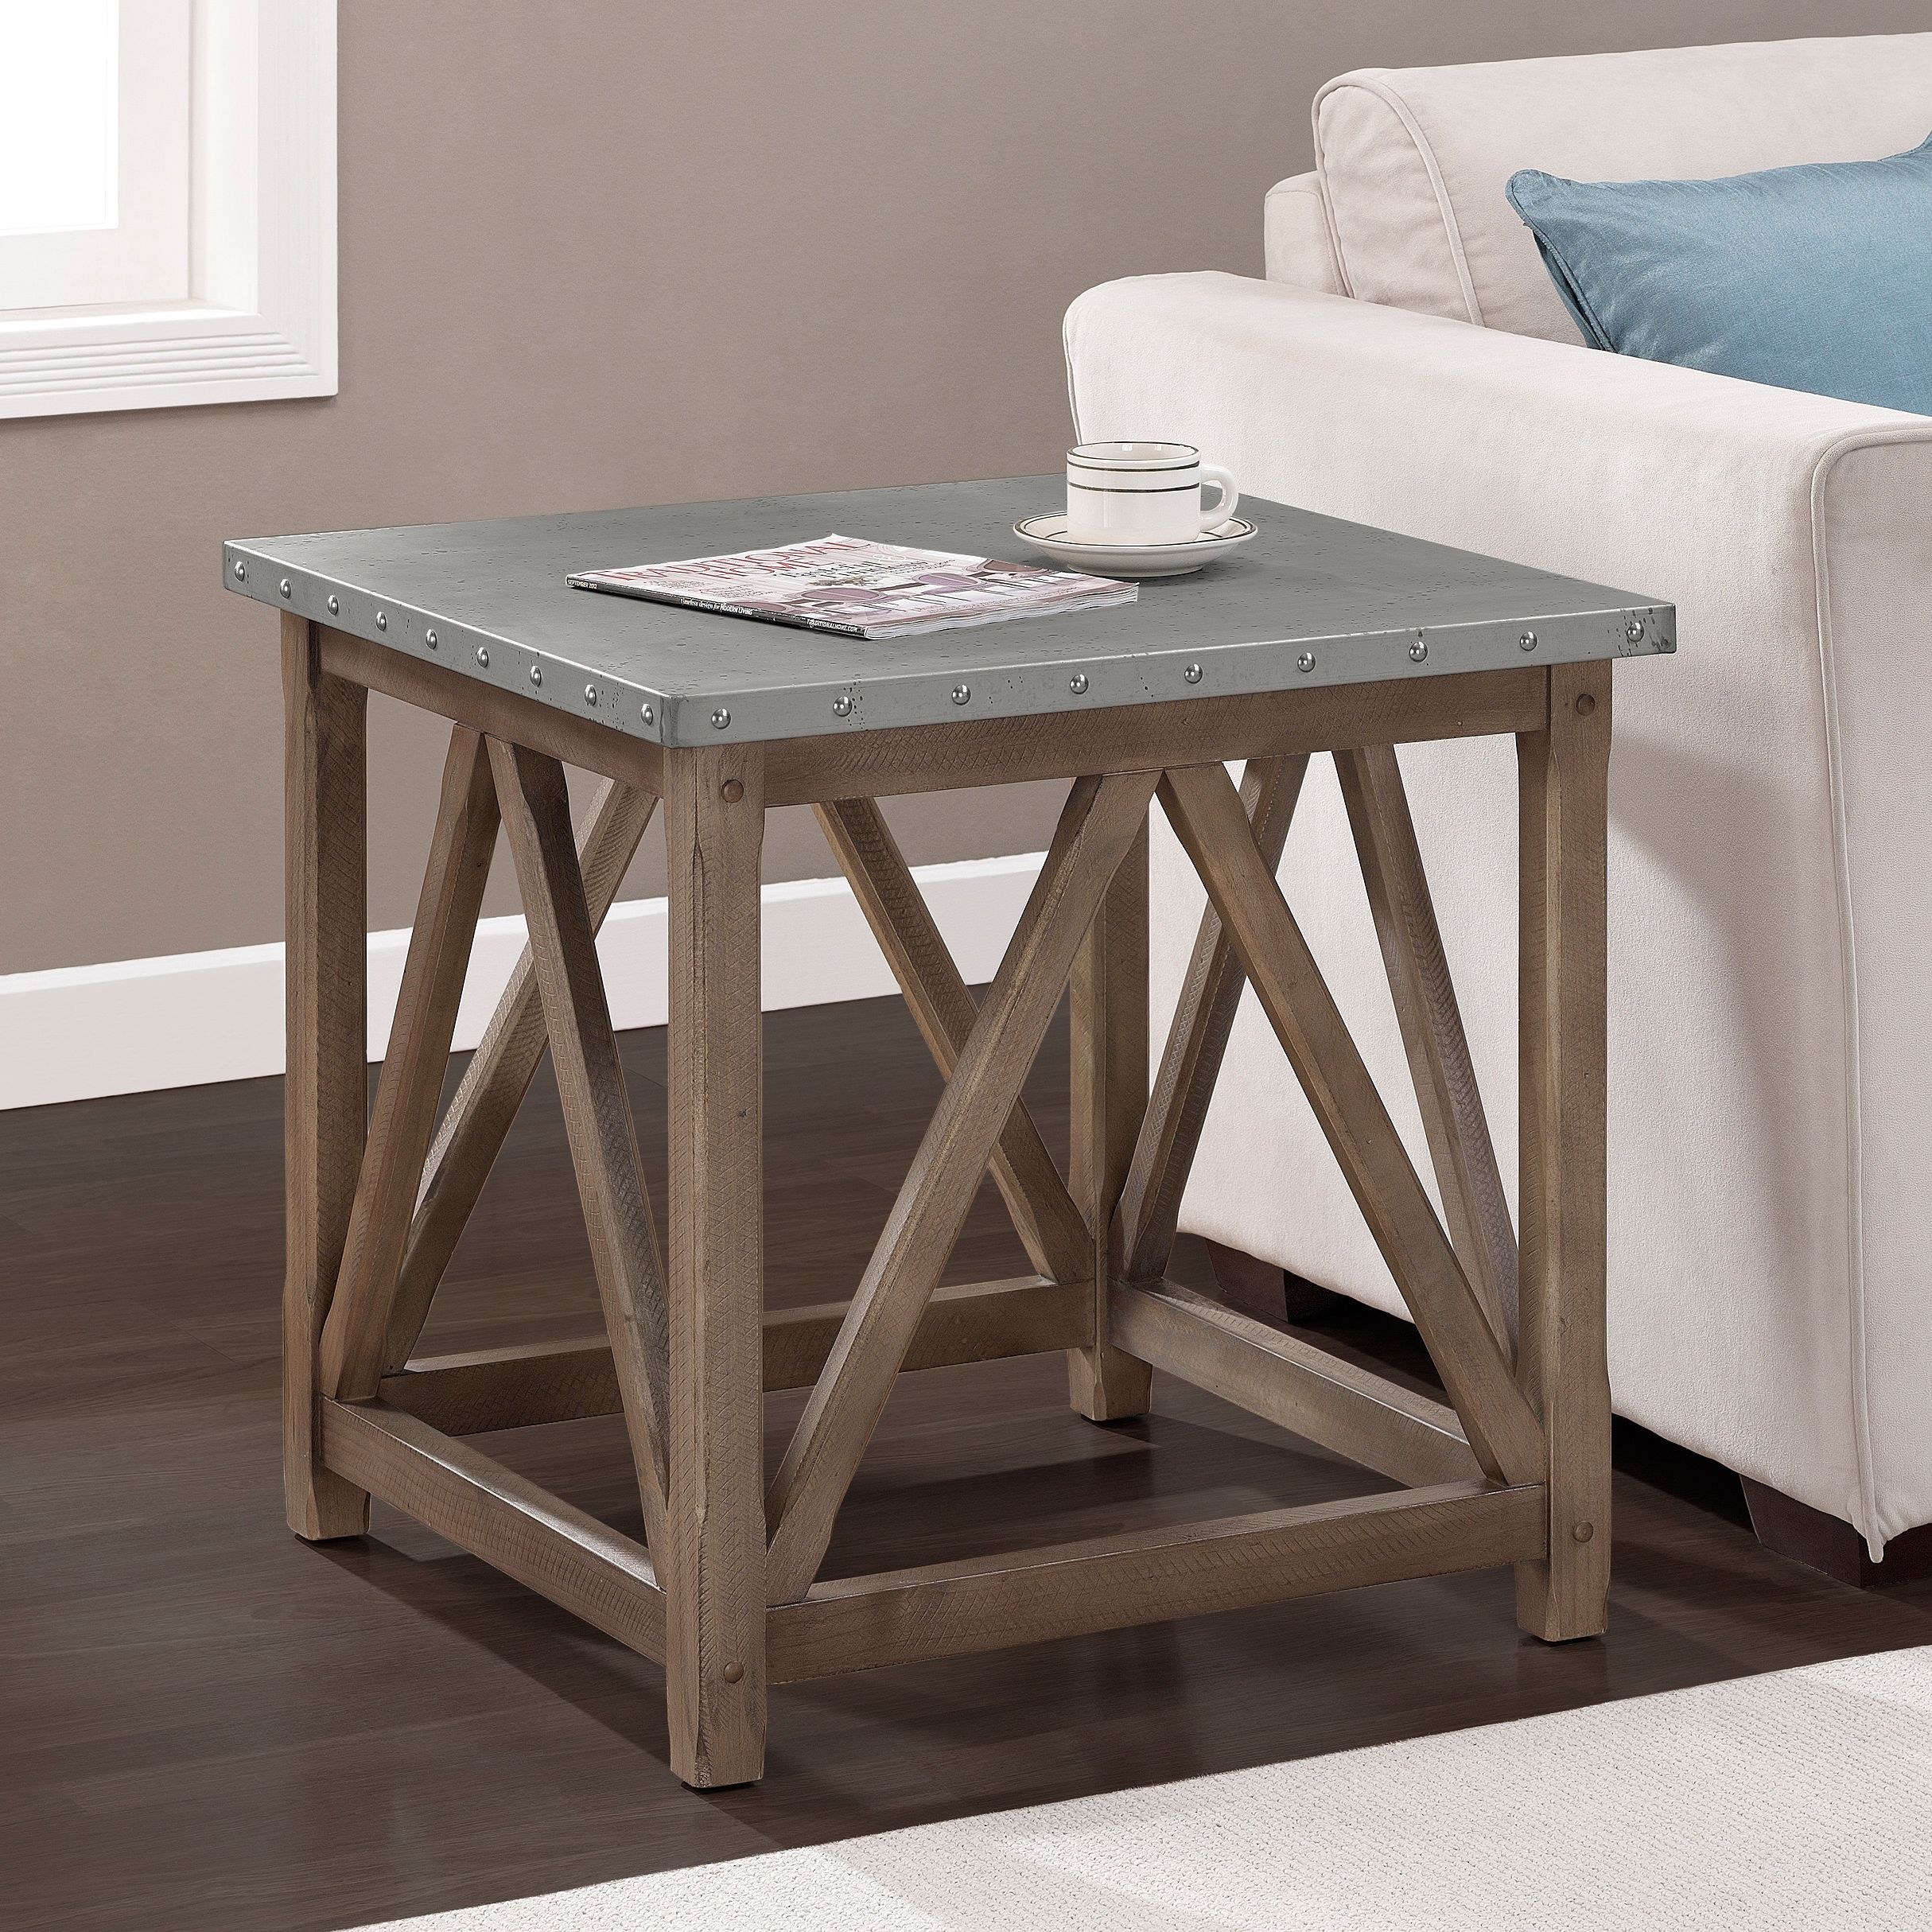 Charmant This Unique End Table Adds Distinct Style To Your Living Space. The Side  Table Features Sturdy, Solid Wood Construction And A Zinc Wrapped Top With  Nailhead ...